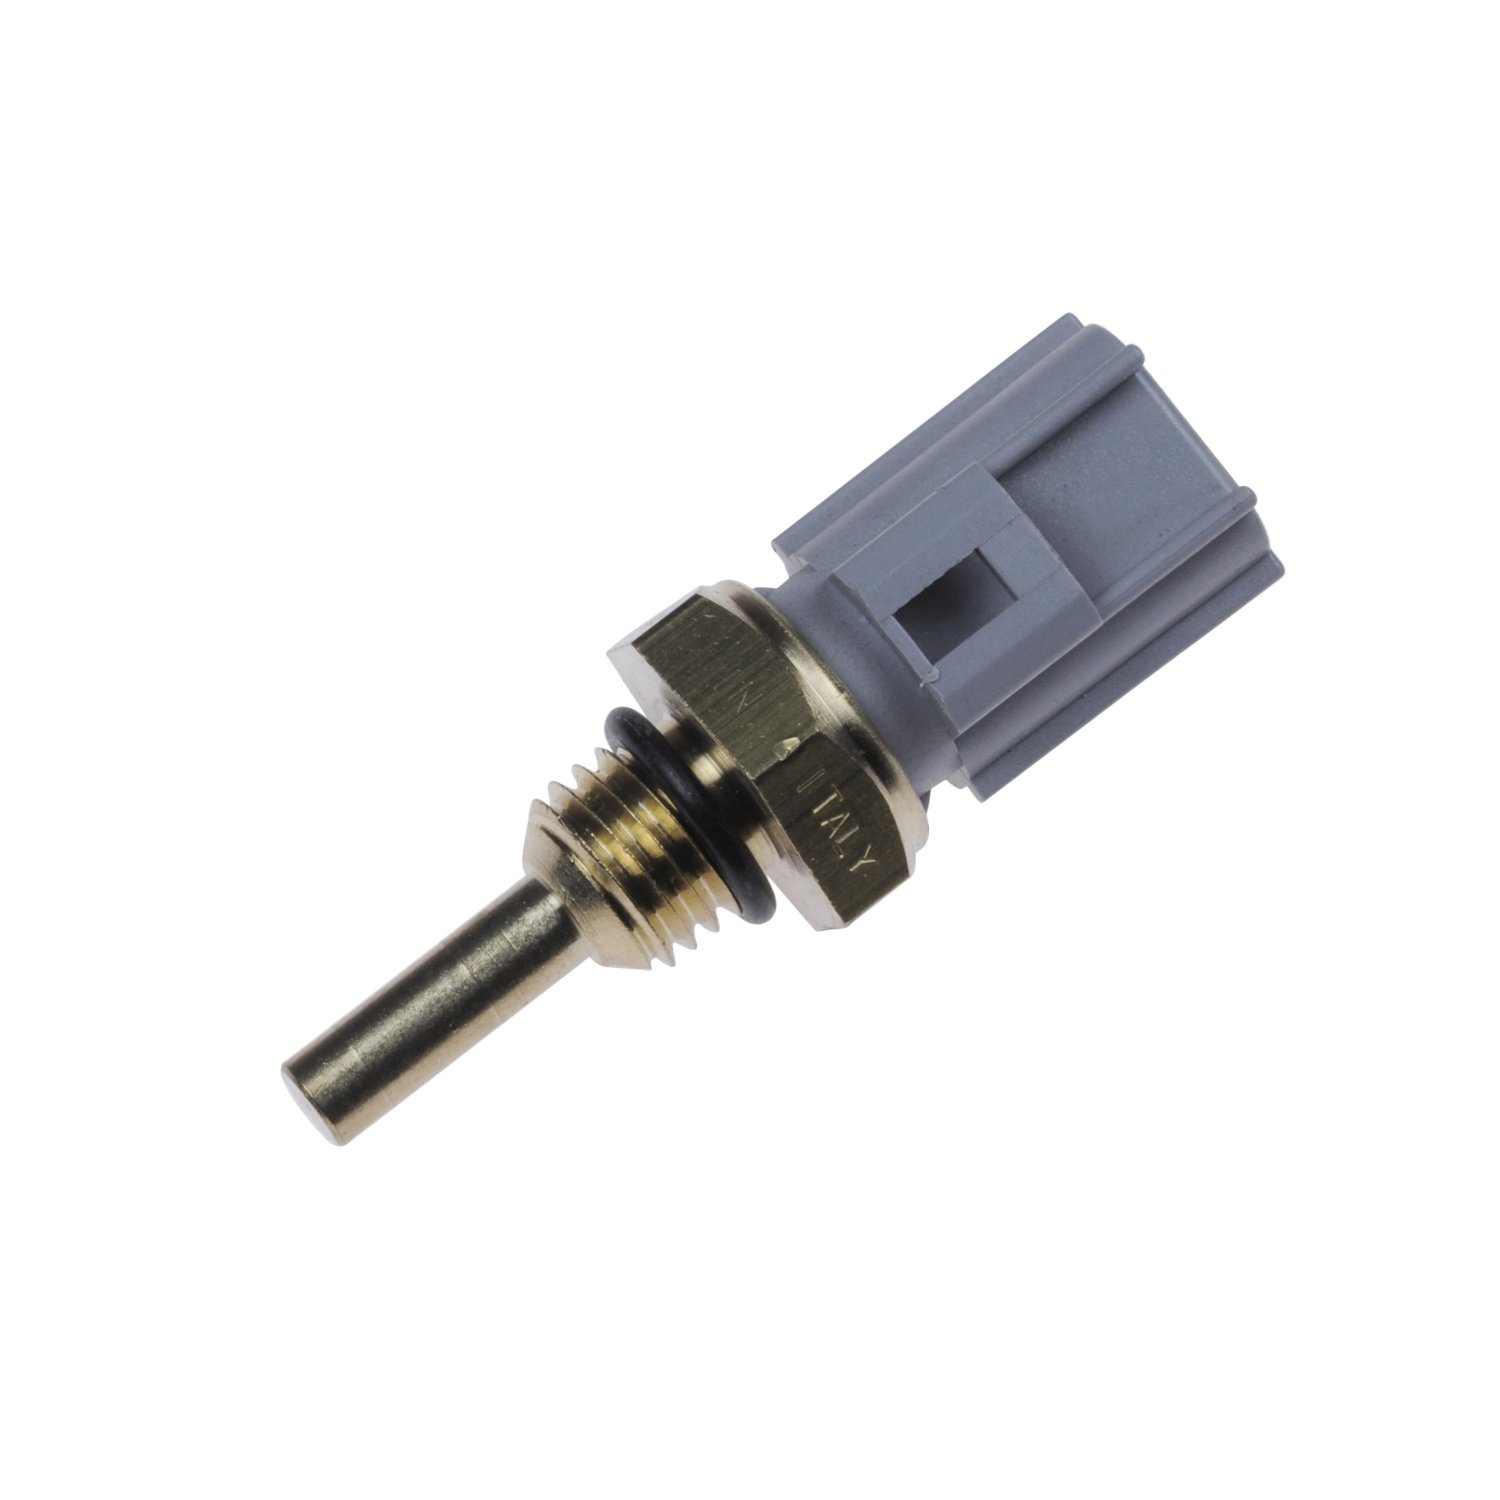 pack of one Blue Print ADK87211 Coolant Temperature Sensor with seal ring